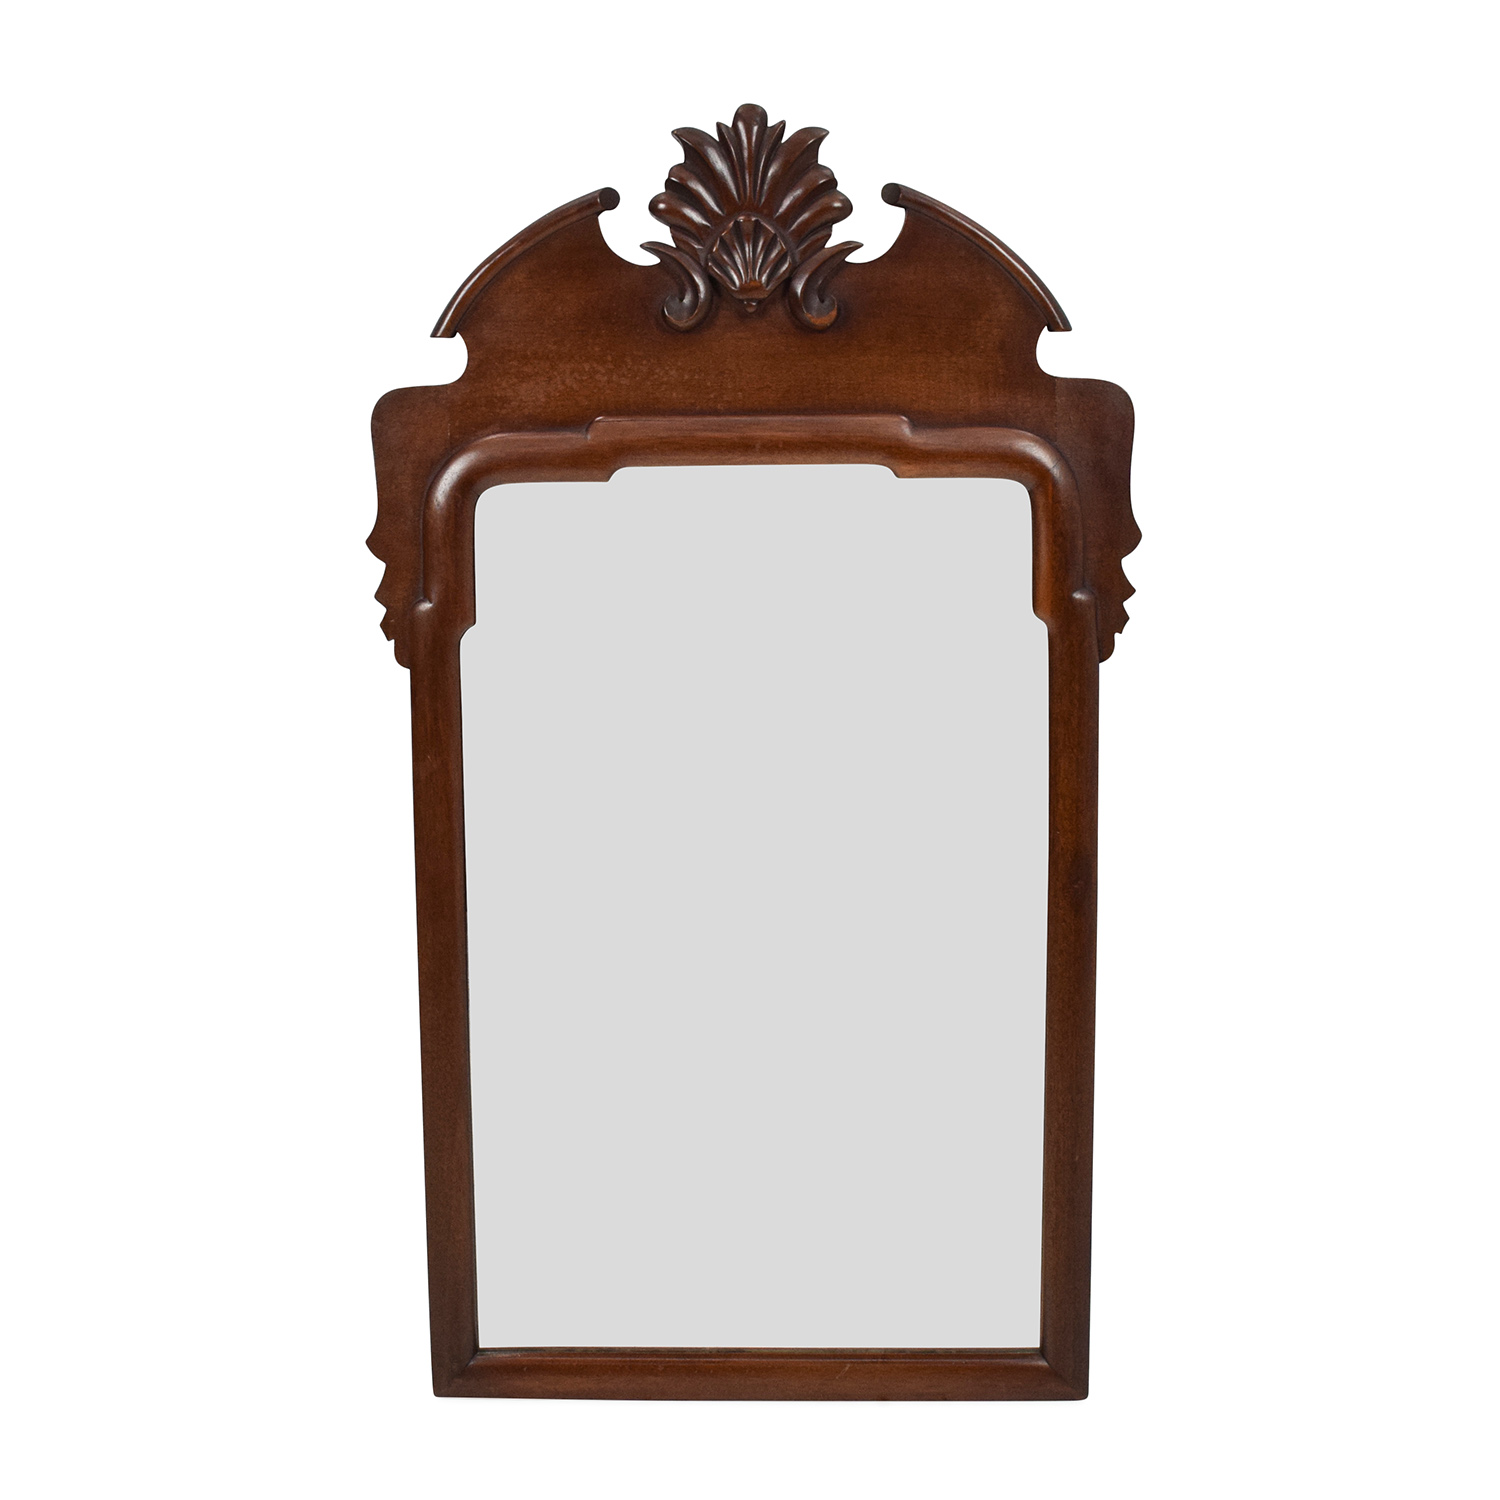 Loved unknown brand antique wood frame mirror discount for Wood framed mirrors